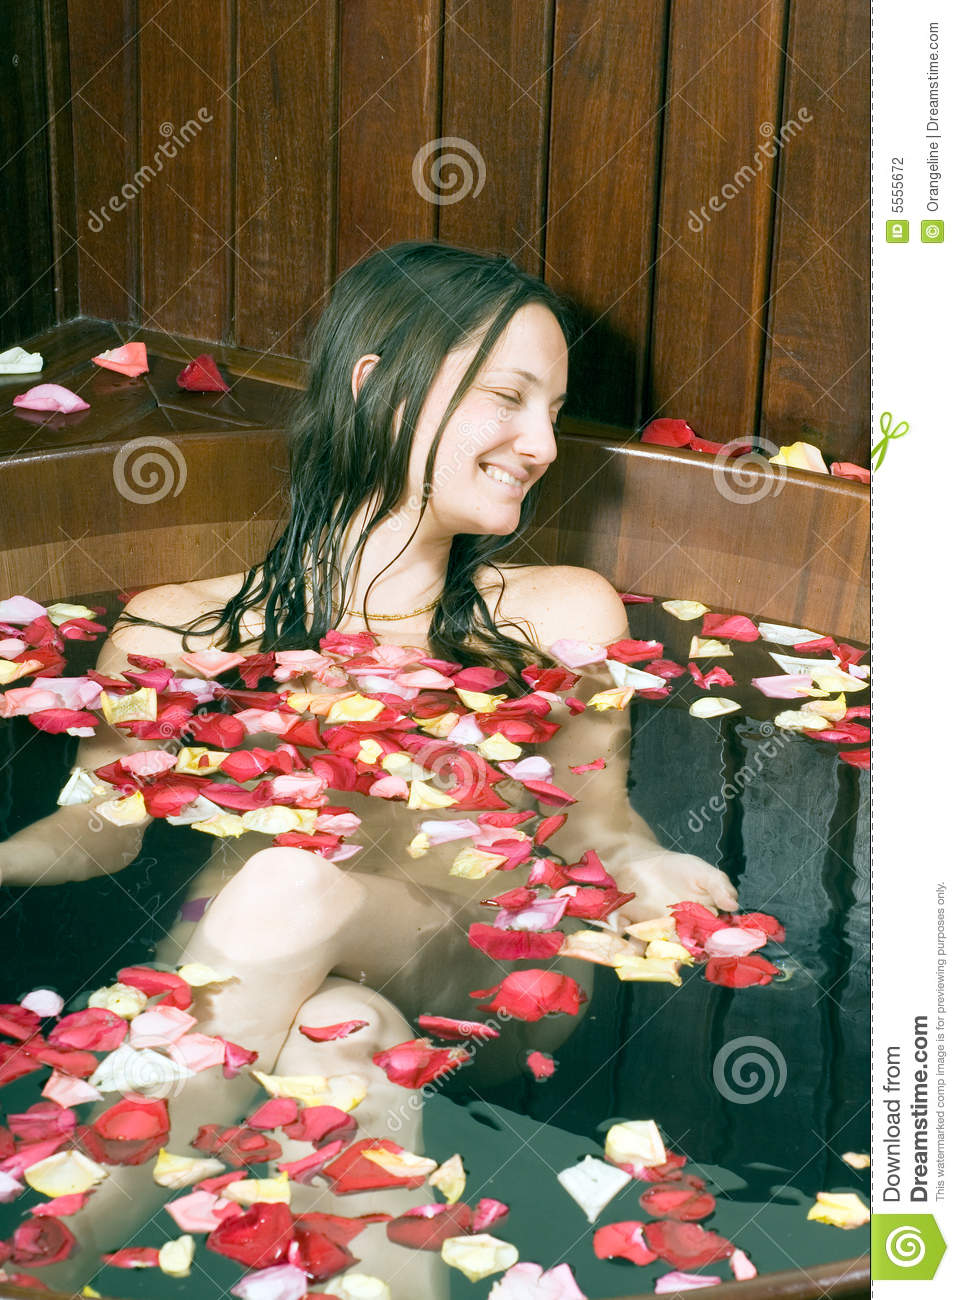 , young girl sitting in a bathtub with rose petals floating, smiles ...